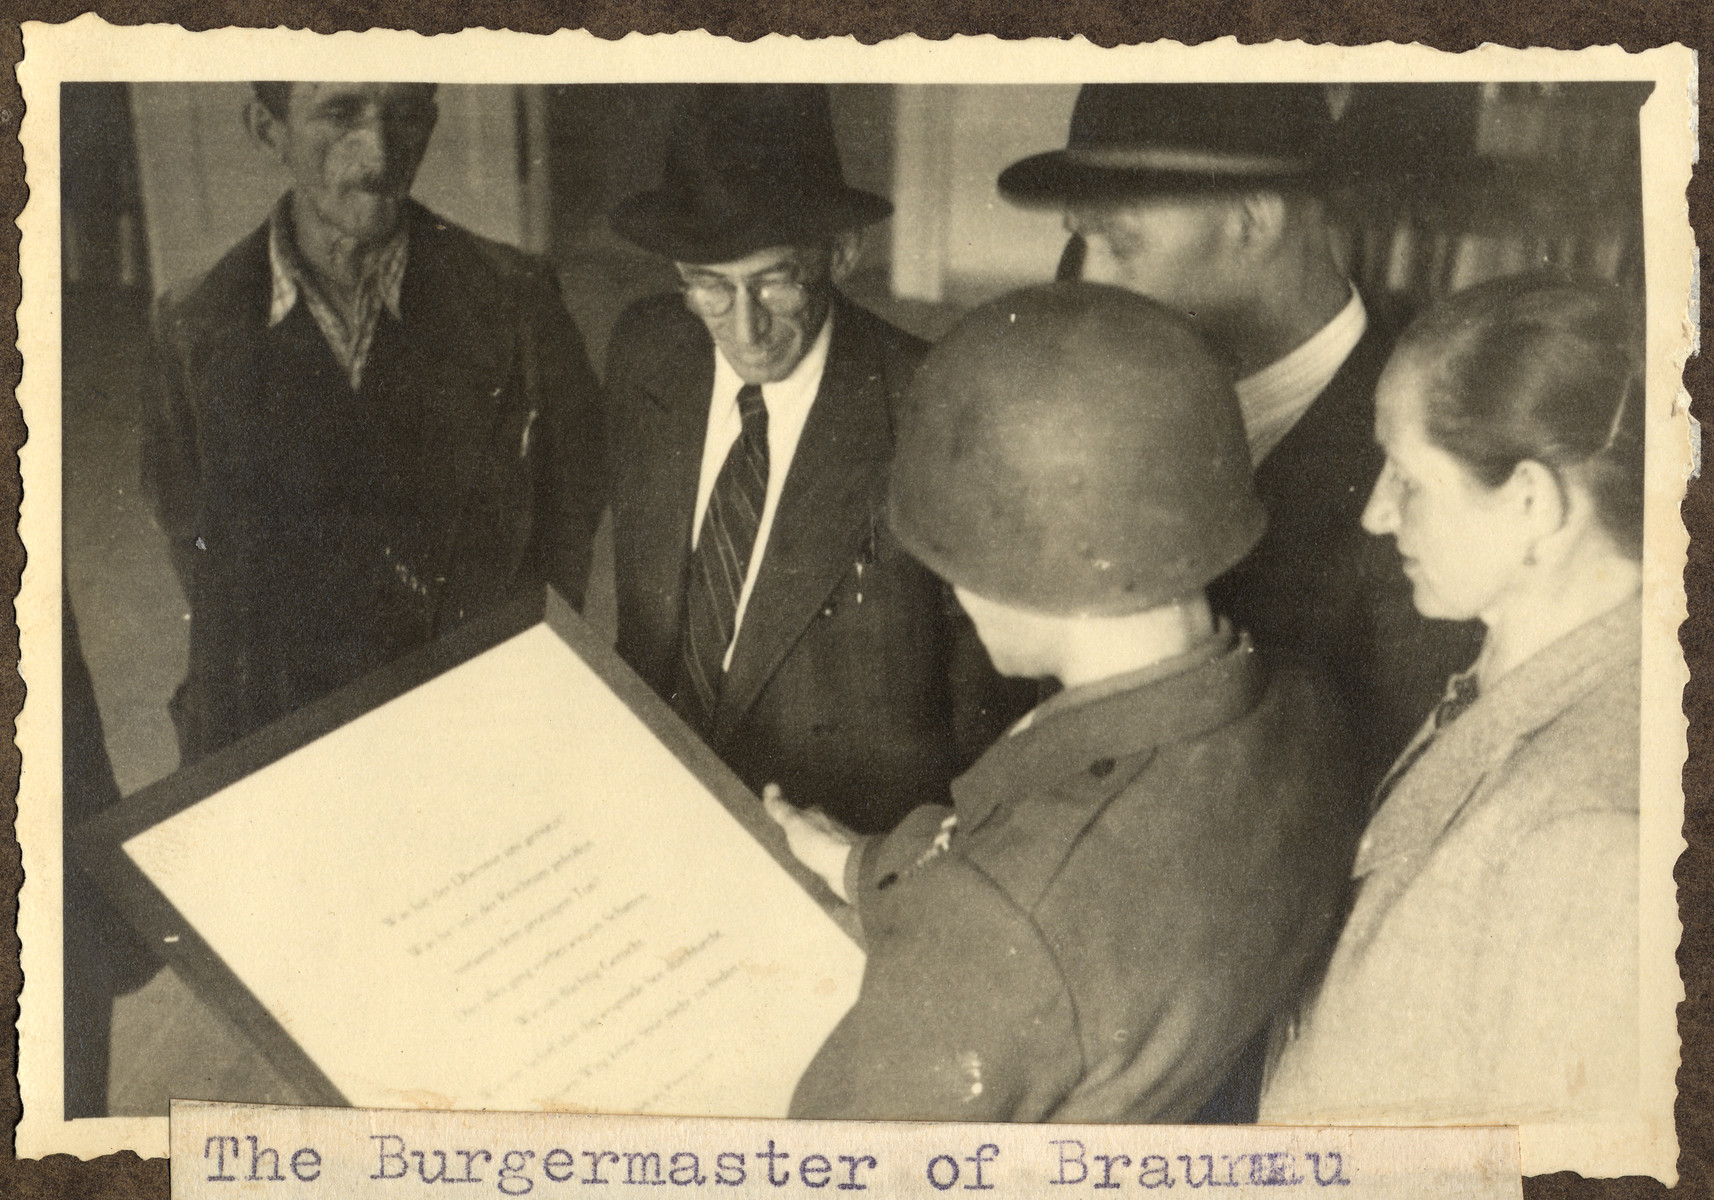 """Joseph Eaton, an American soldier and German-Jewish emigre, sets up a display of biblical quotations in the home where Adolf Hitler was born.  The original caption reads: """"The Burgermaster of Braunau watches the text being hung up."""""""